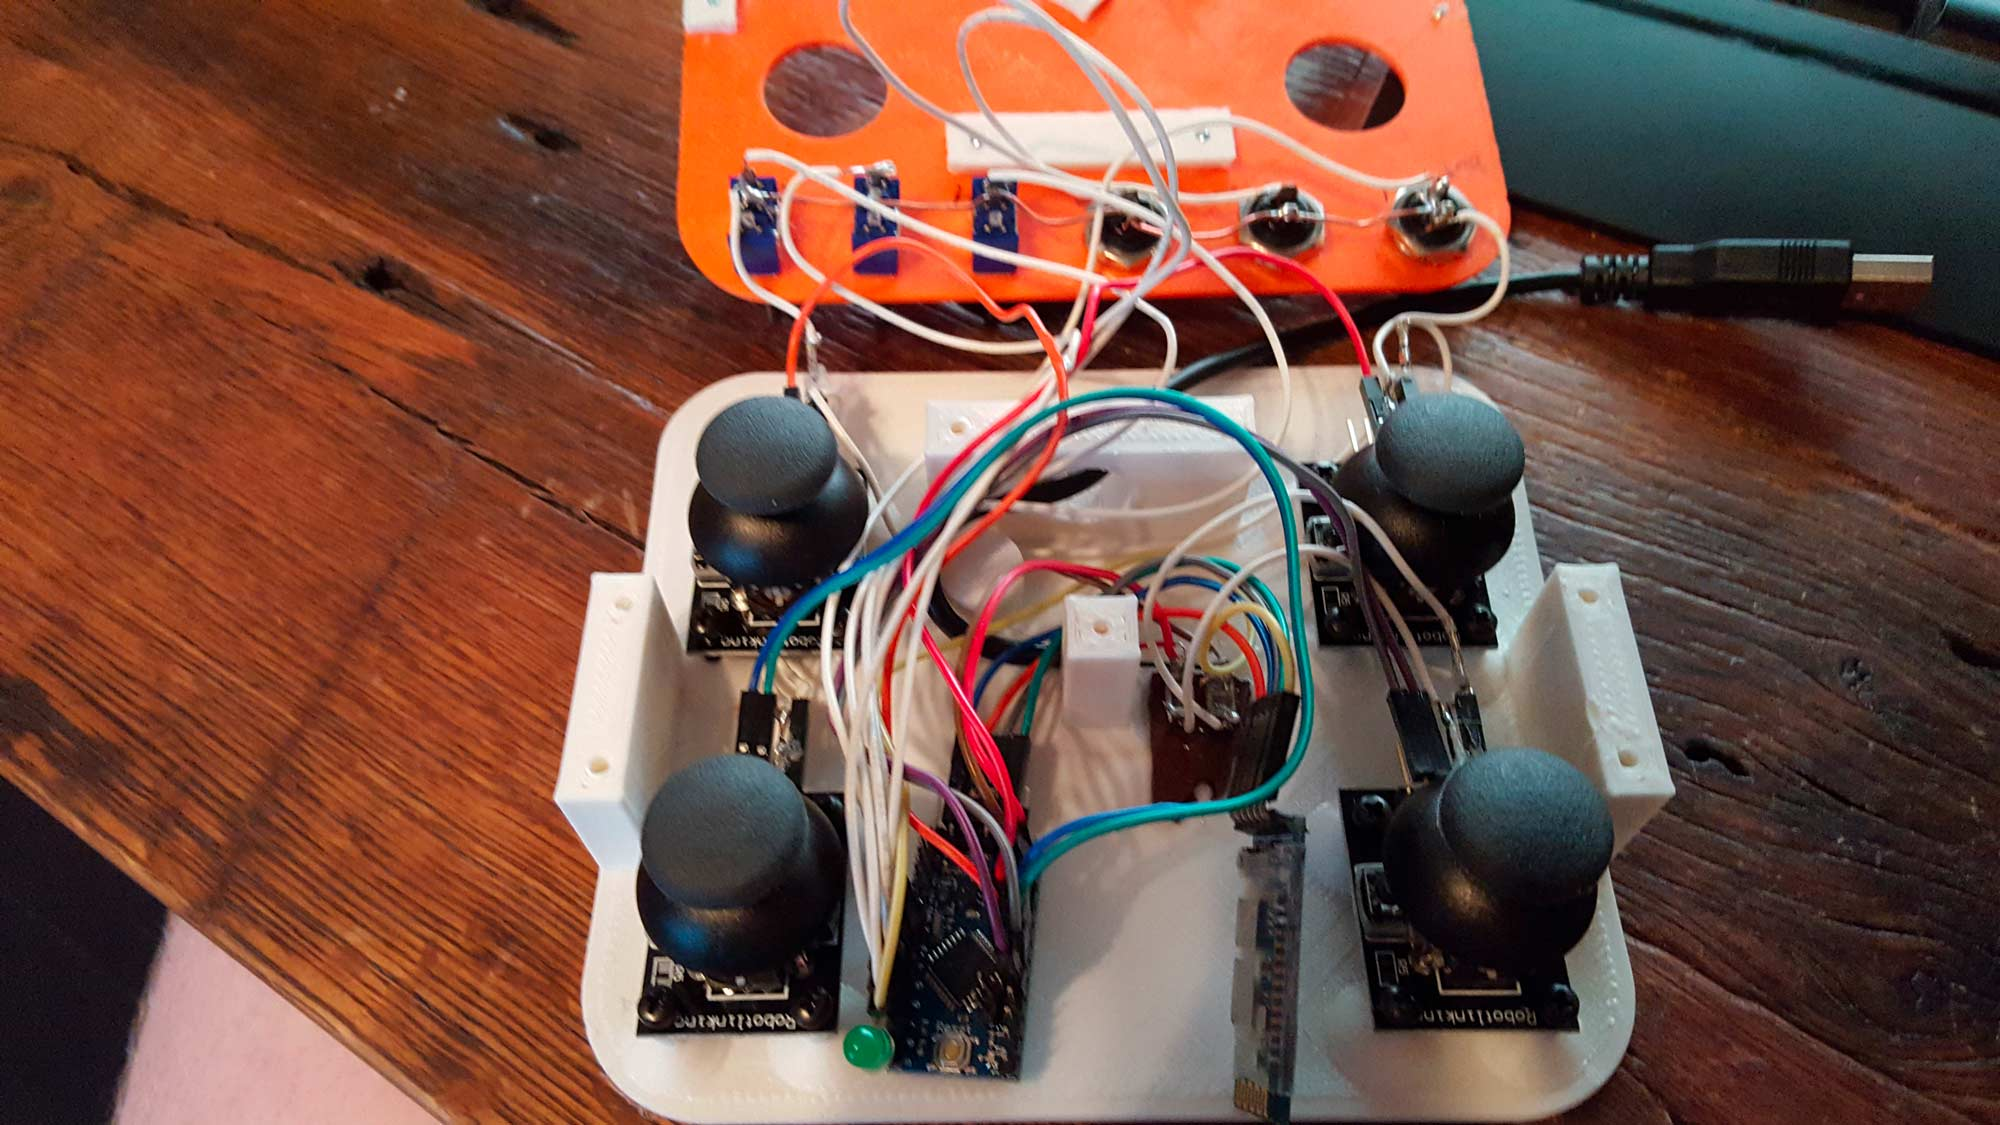 Attach everything (including the bluetooth module) to the arduino.